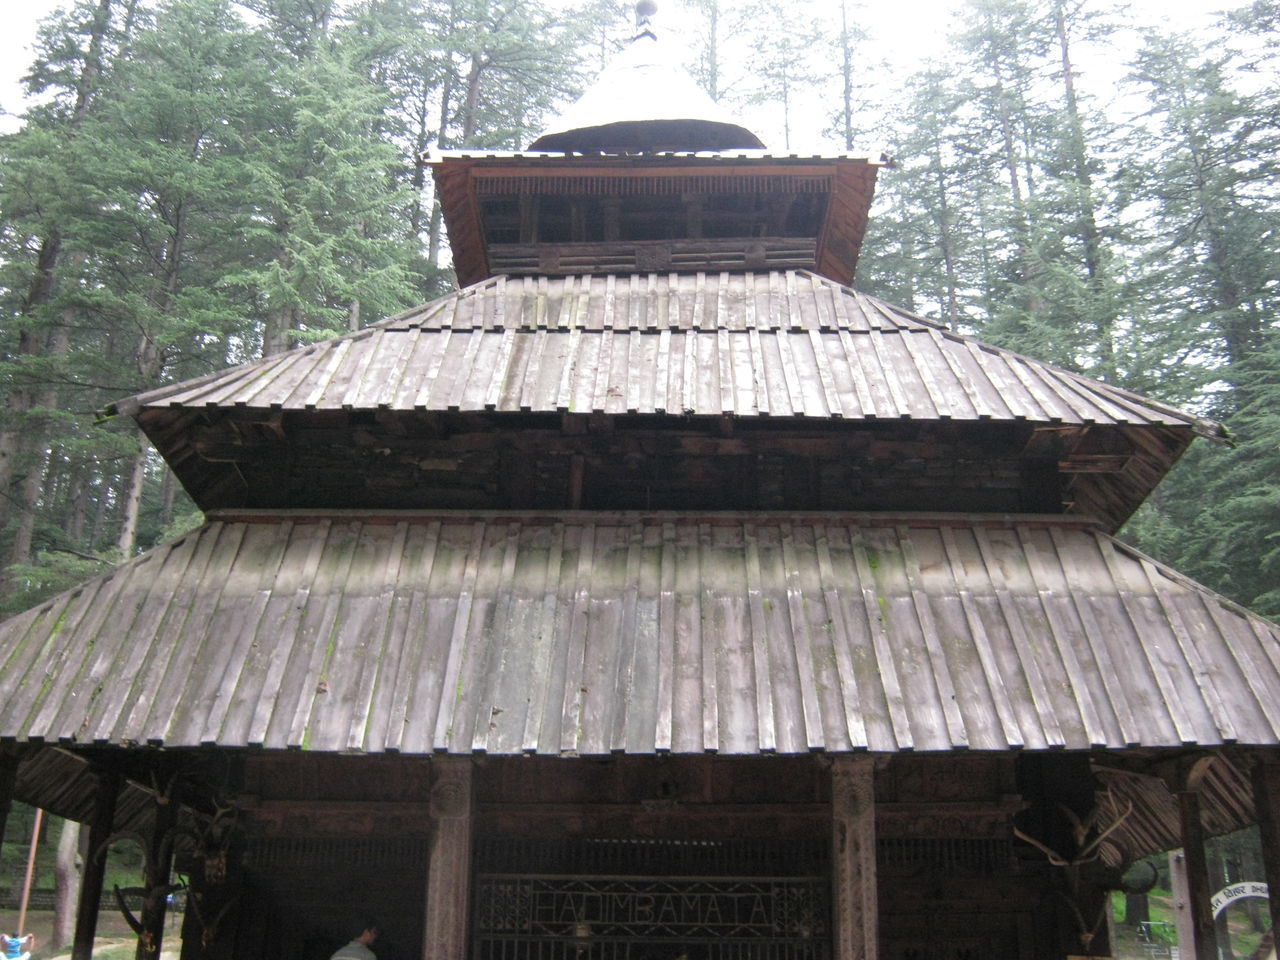 tree, built structure, day, architecture, roof, wood - material, no people, thatched roof, building exterior, outdoors, nature, close-up